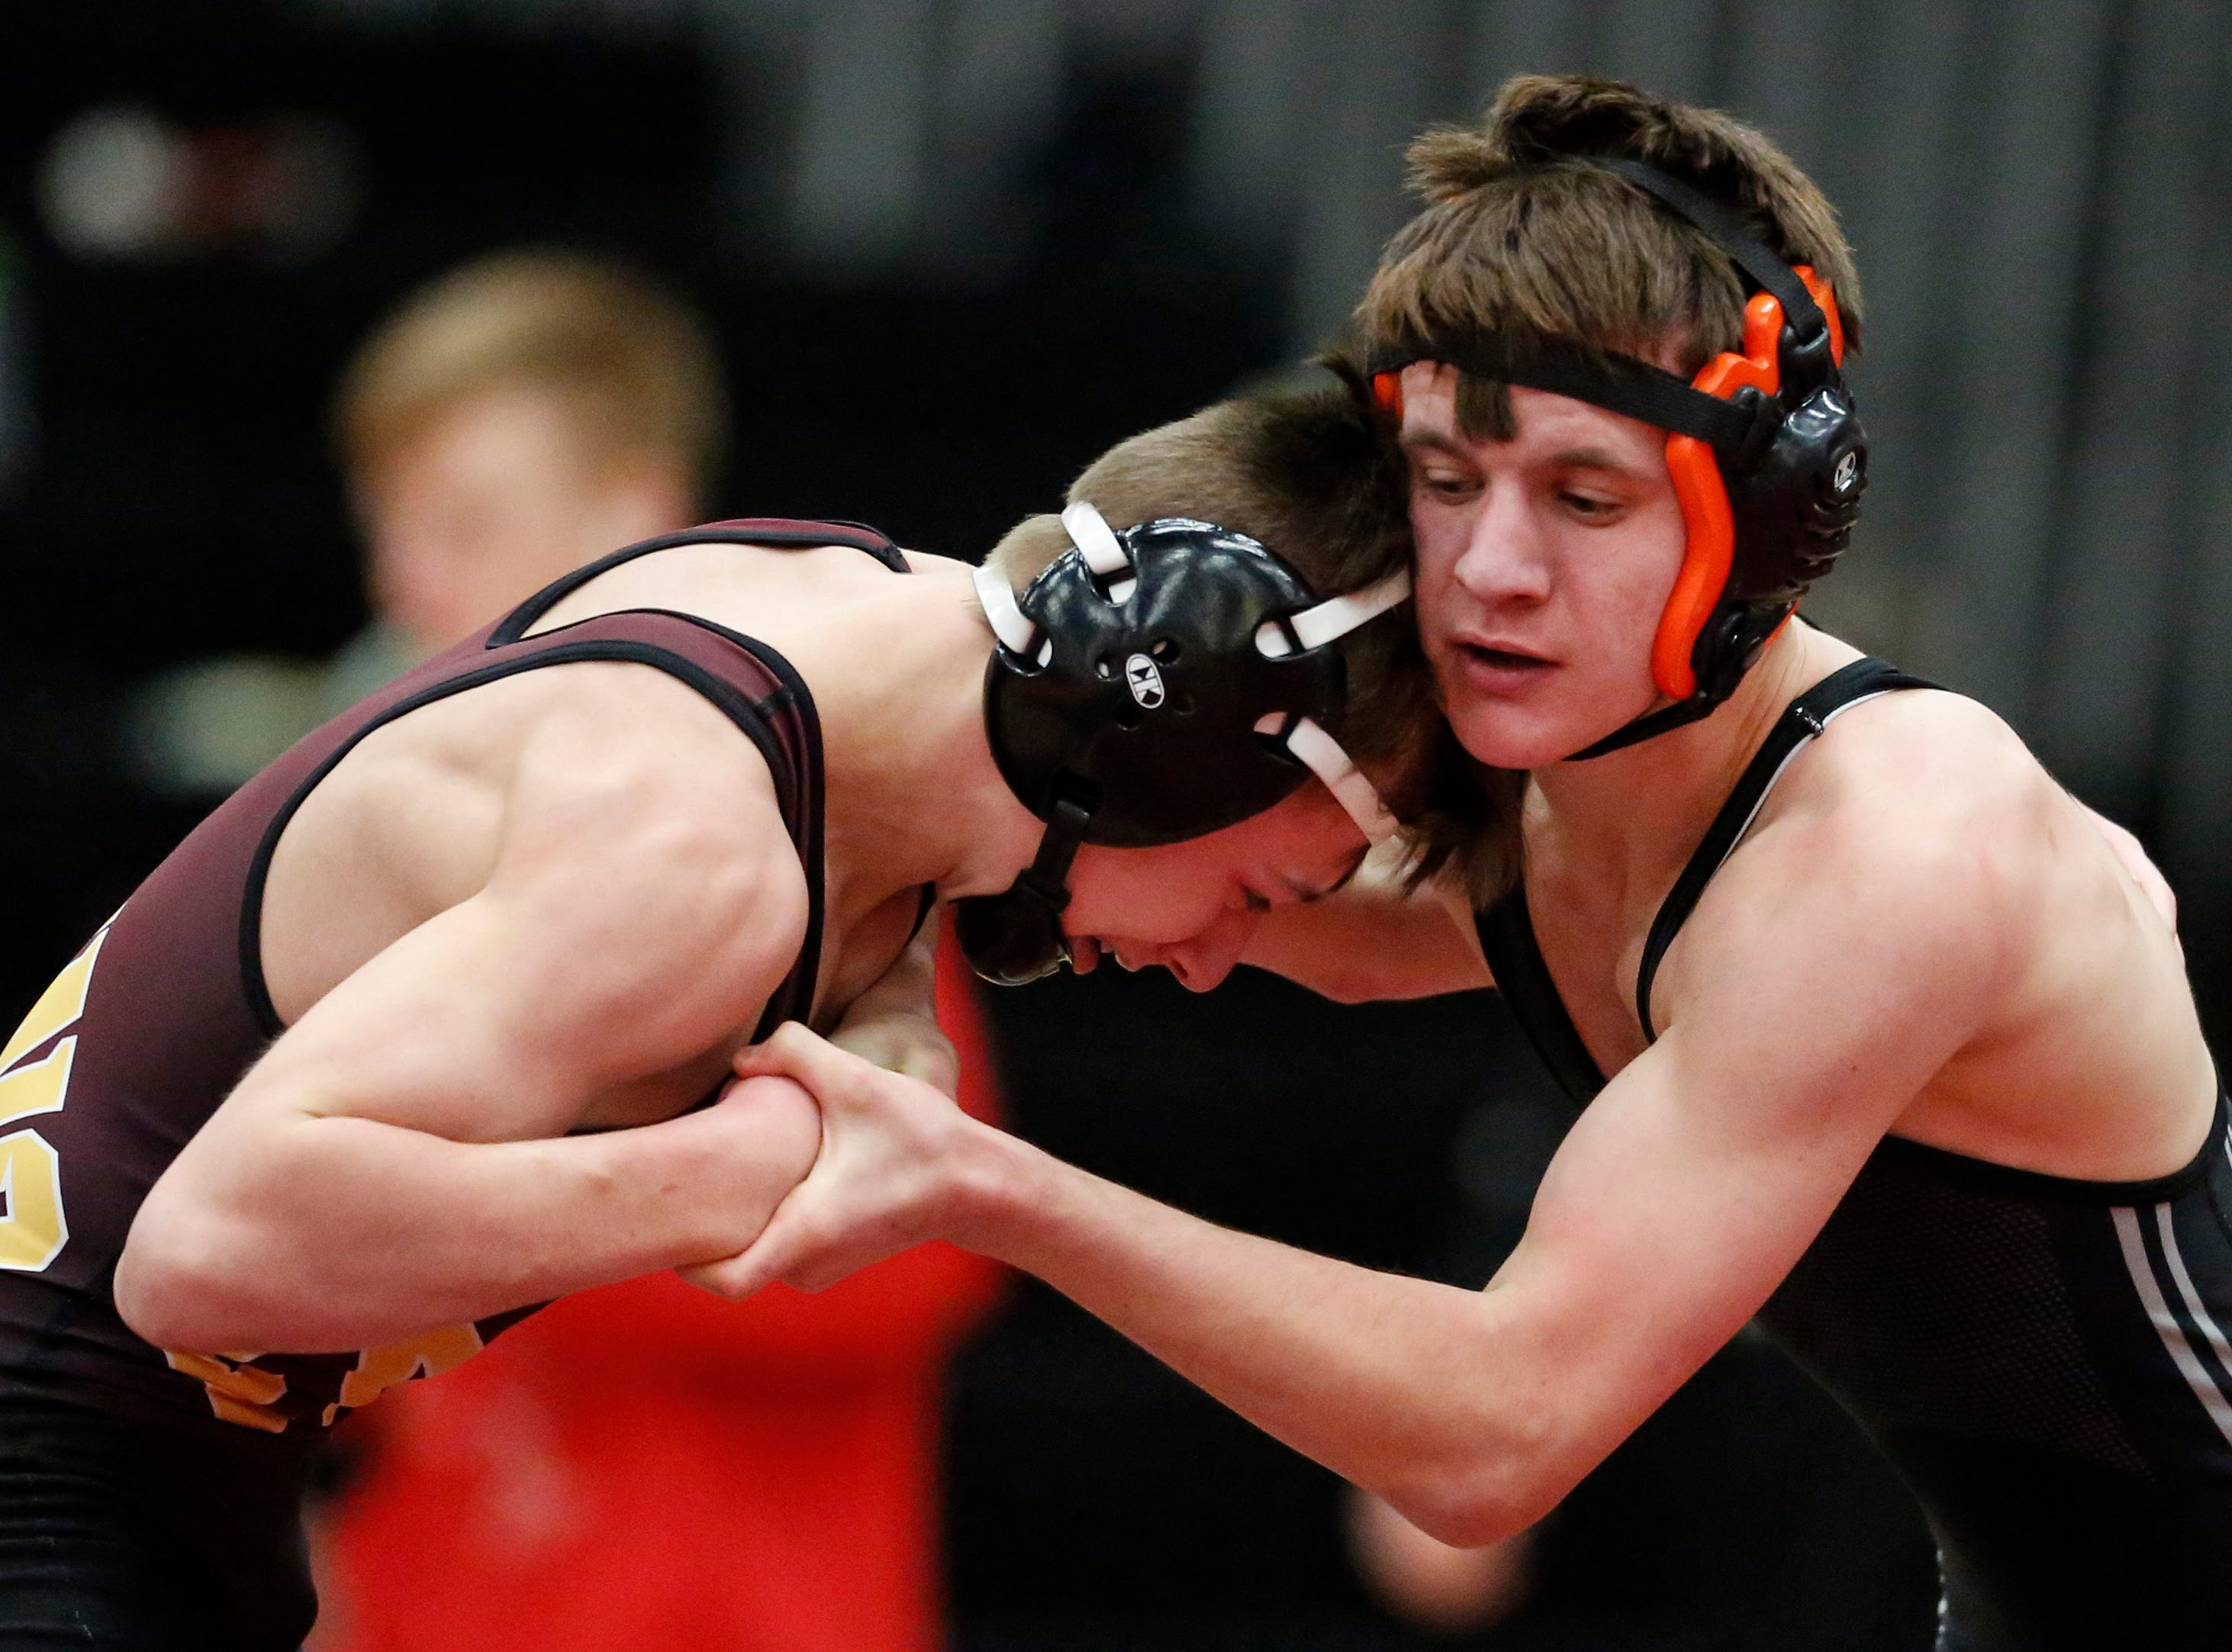 Plymouth's Jack Miller wrestles West Bend East's Cael Pionkowski in the 106 weight class during the WIAA D1 Regionals at Manitowoc Lincoln High School Saturday, February 9, 2019, in Manitowoc, Wis. Joshua Clark/USA TODAY NETWORK-Wisconsin